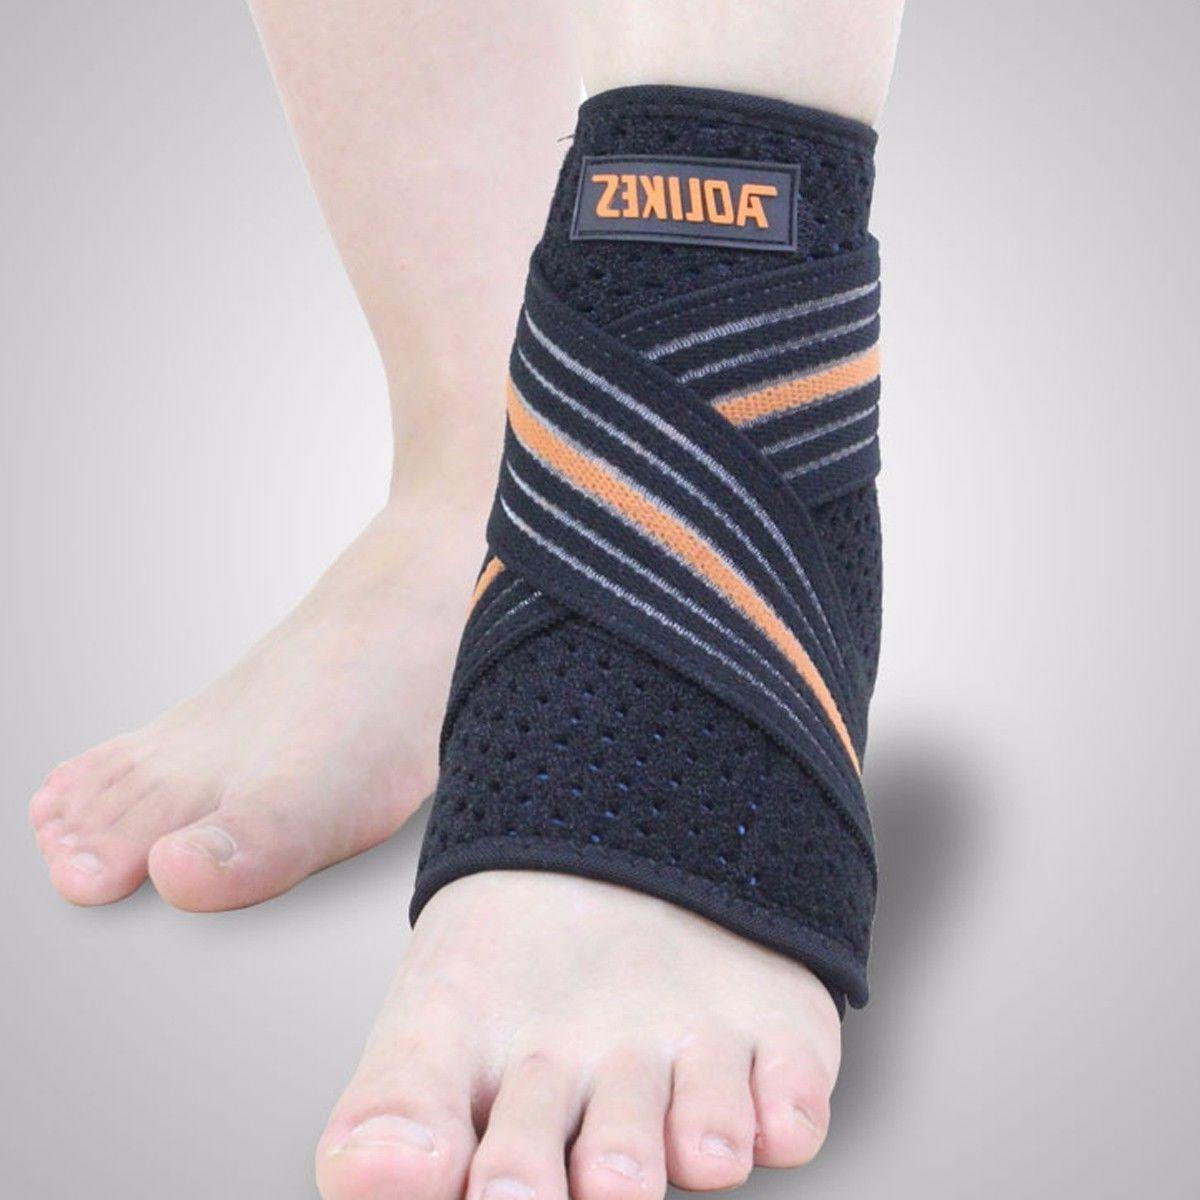 Ankle Brace Tendon Wrap Adjustable Neoprene Tendinitis